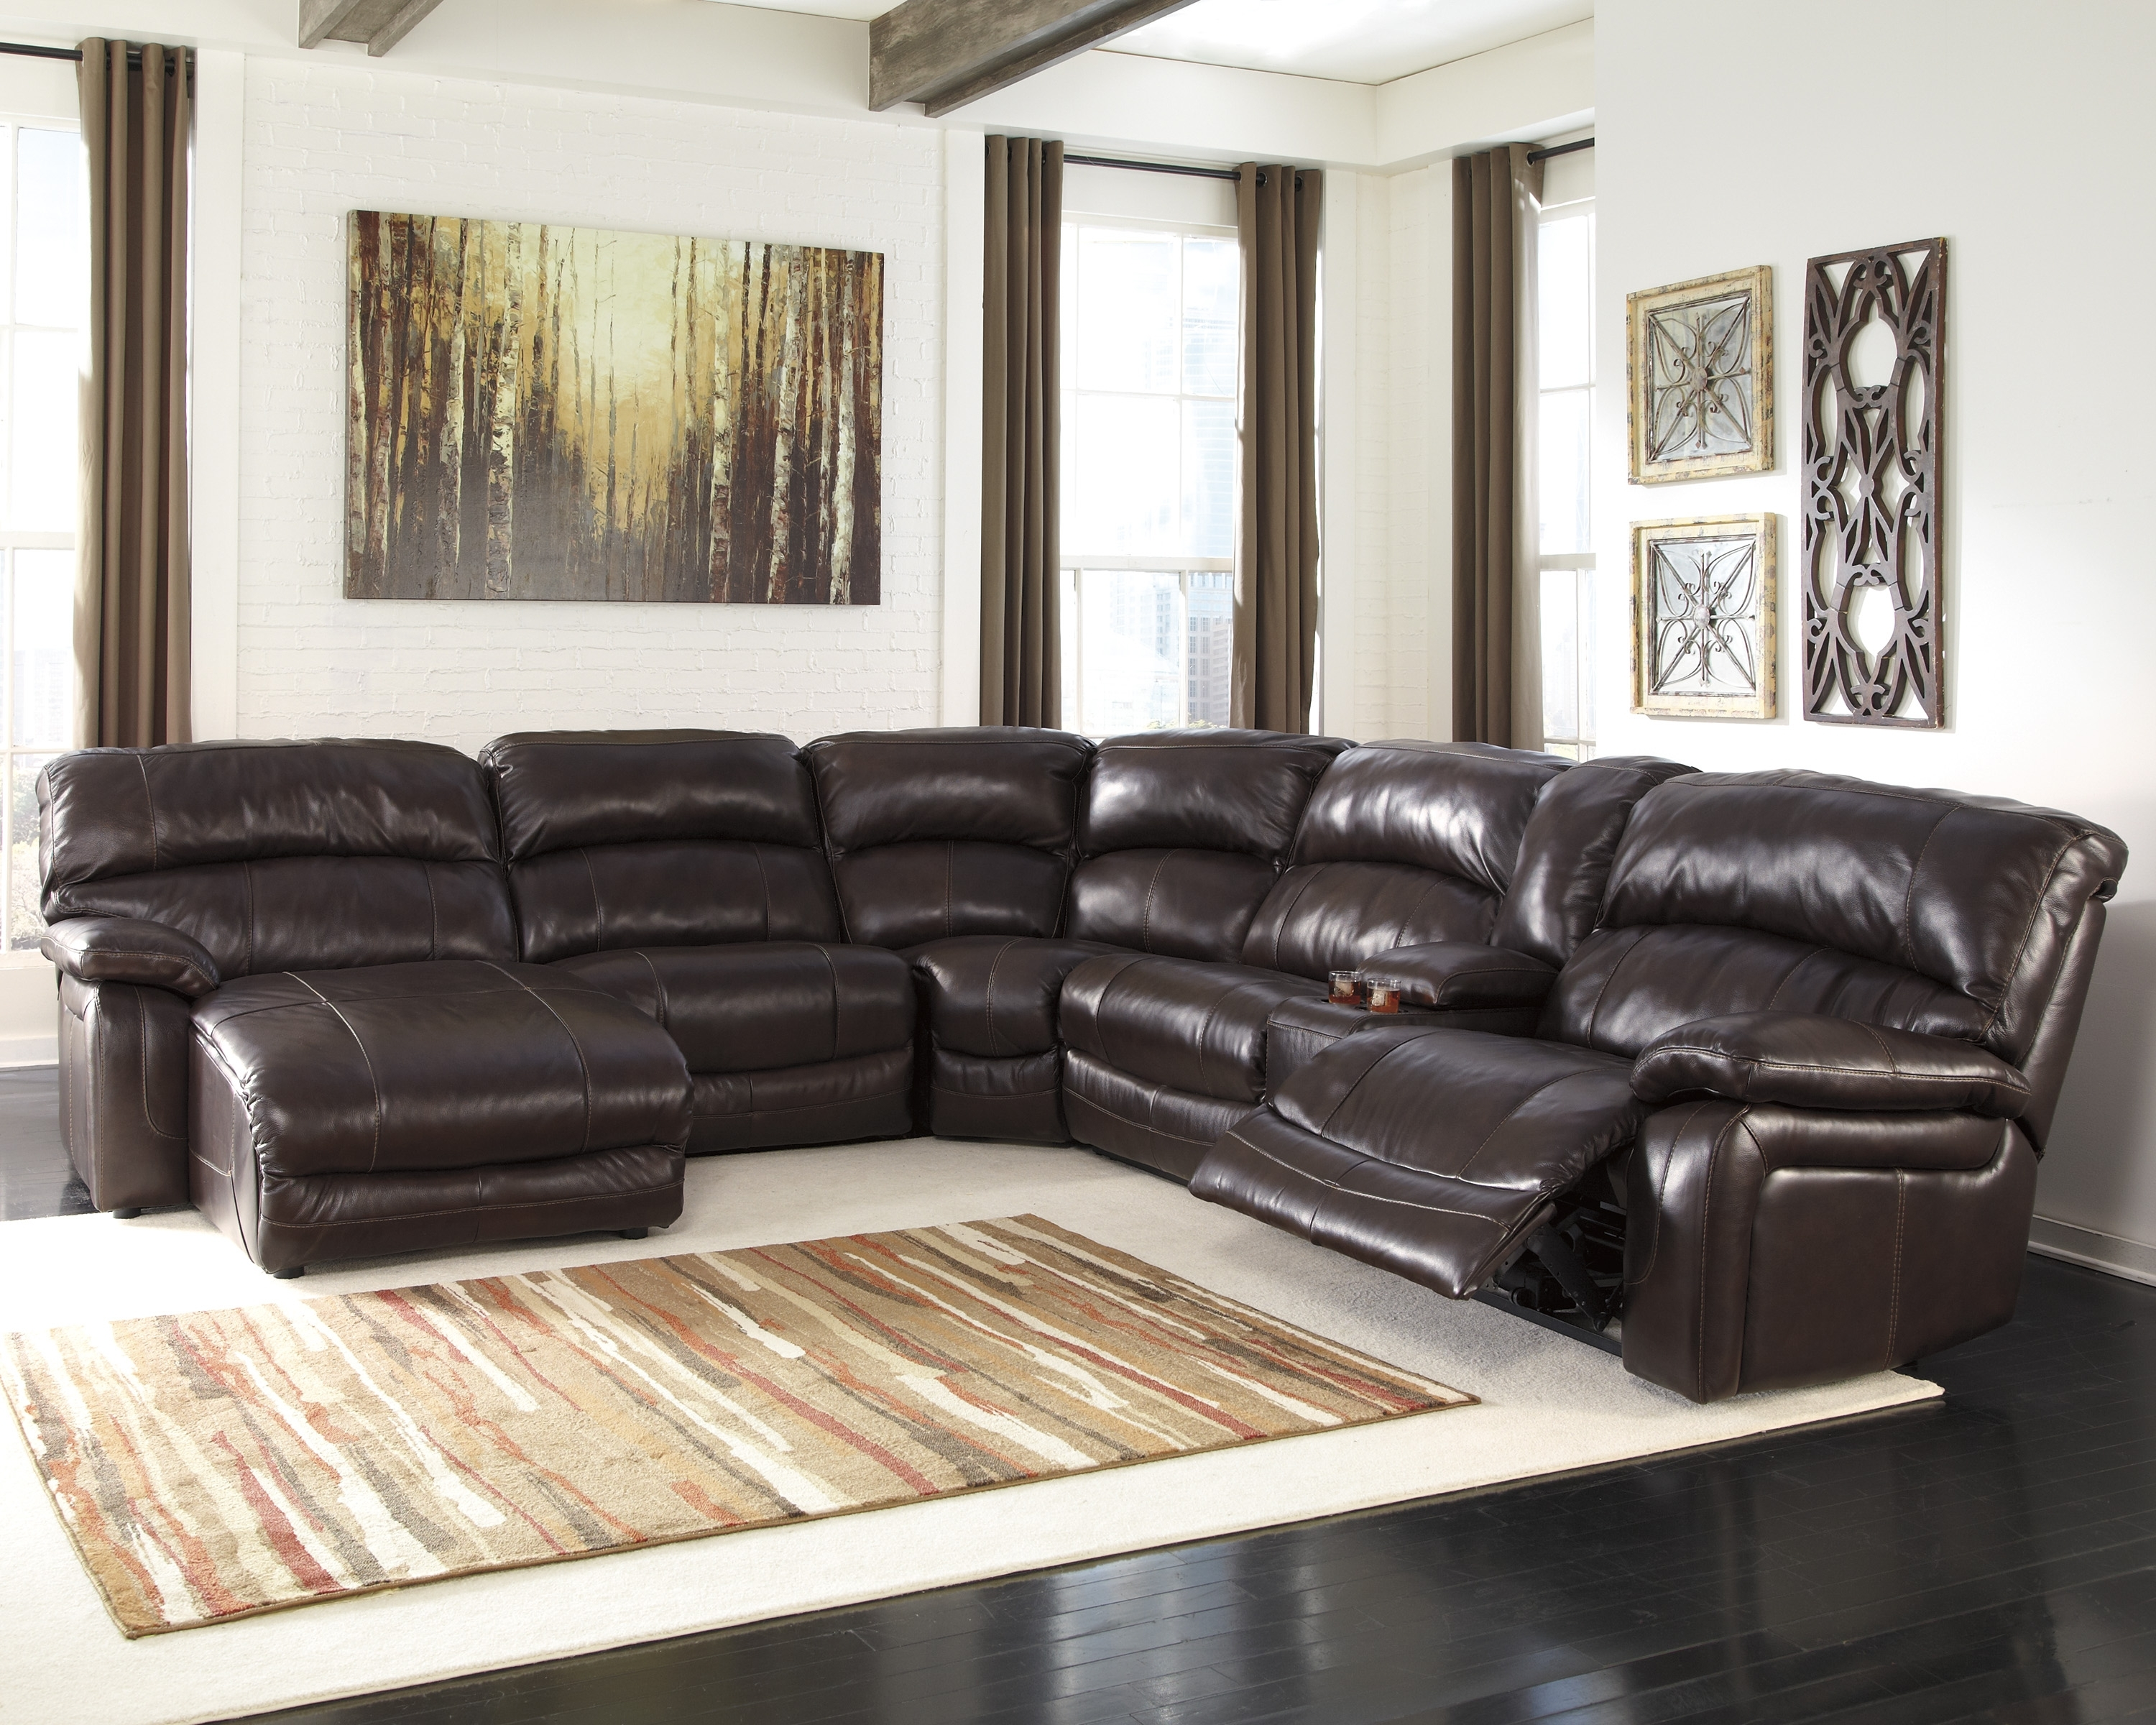 Leather Sectionals With Chaise And Recliner Throughout Newest Leather Sectional Sofas With Recliners And Cup Holders Sectional (View 9 of 15)